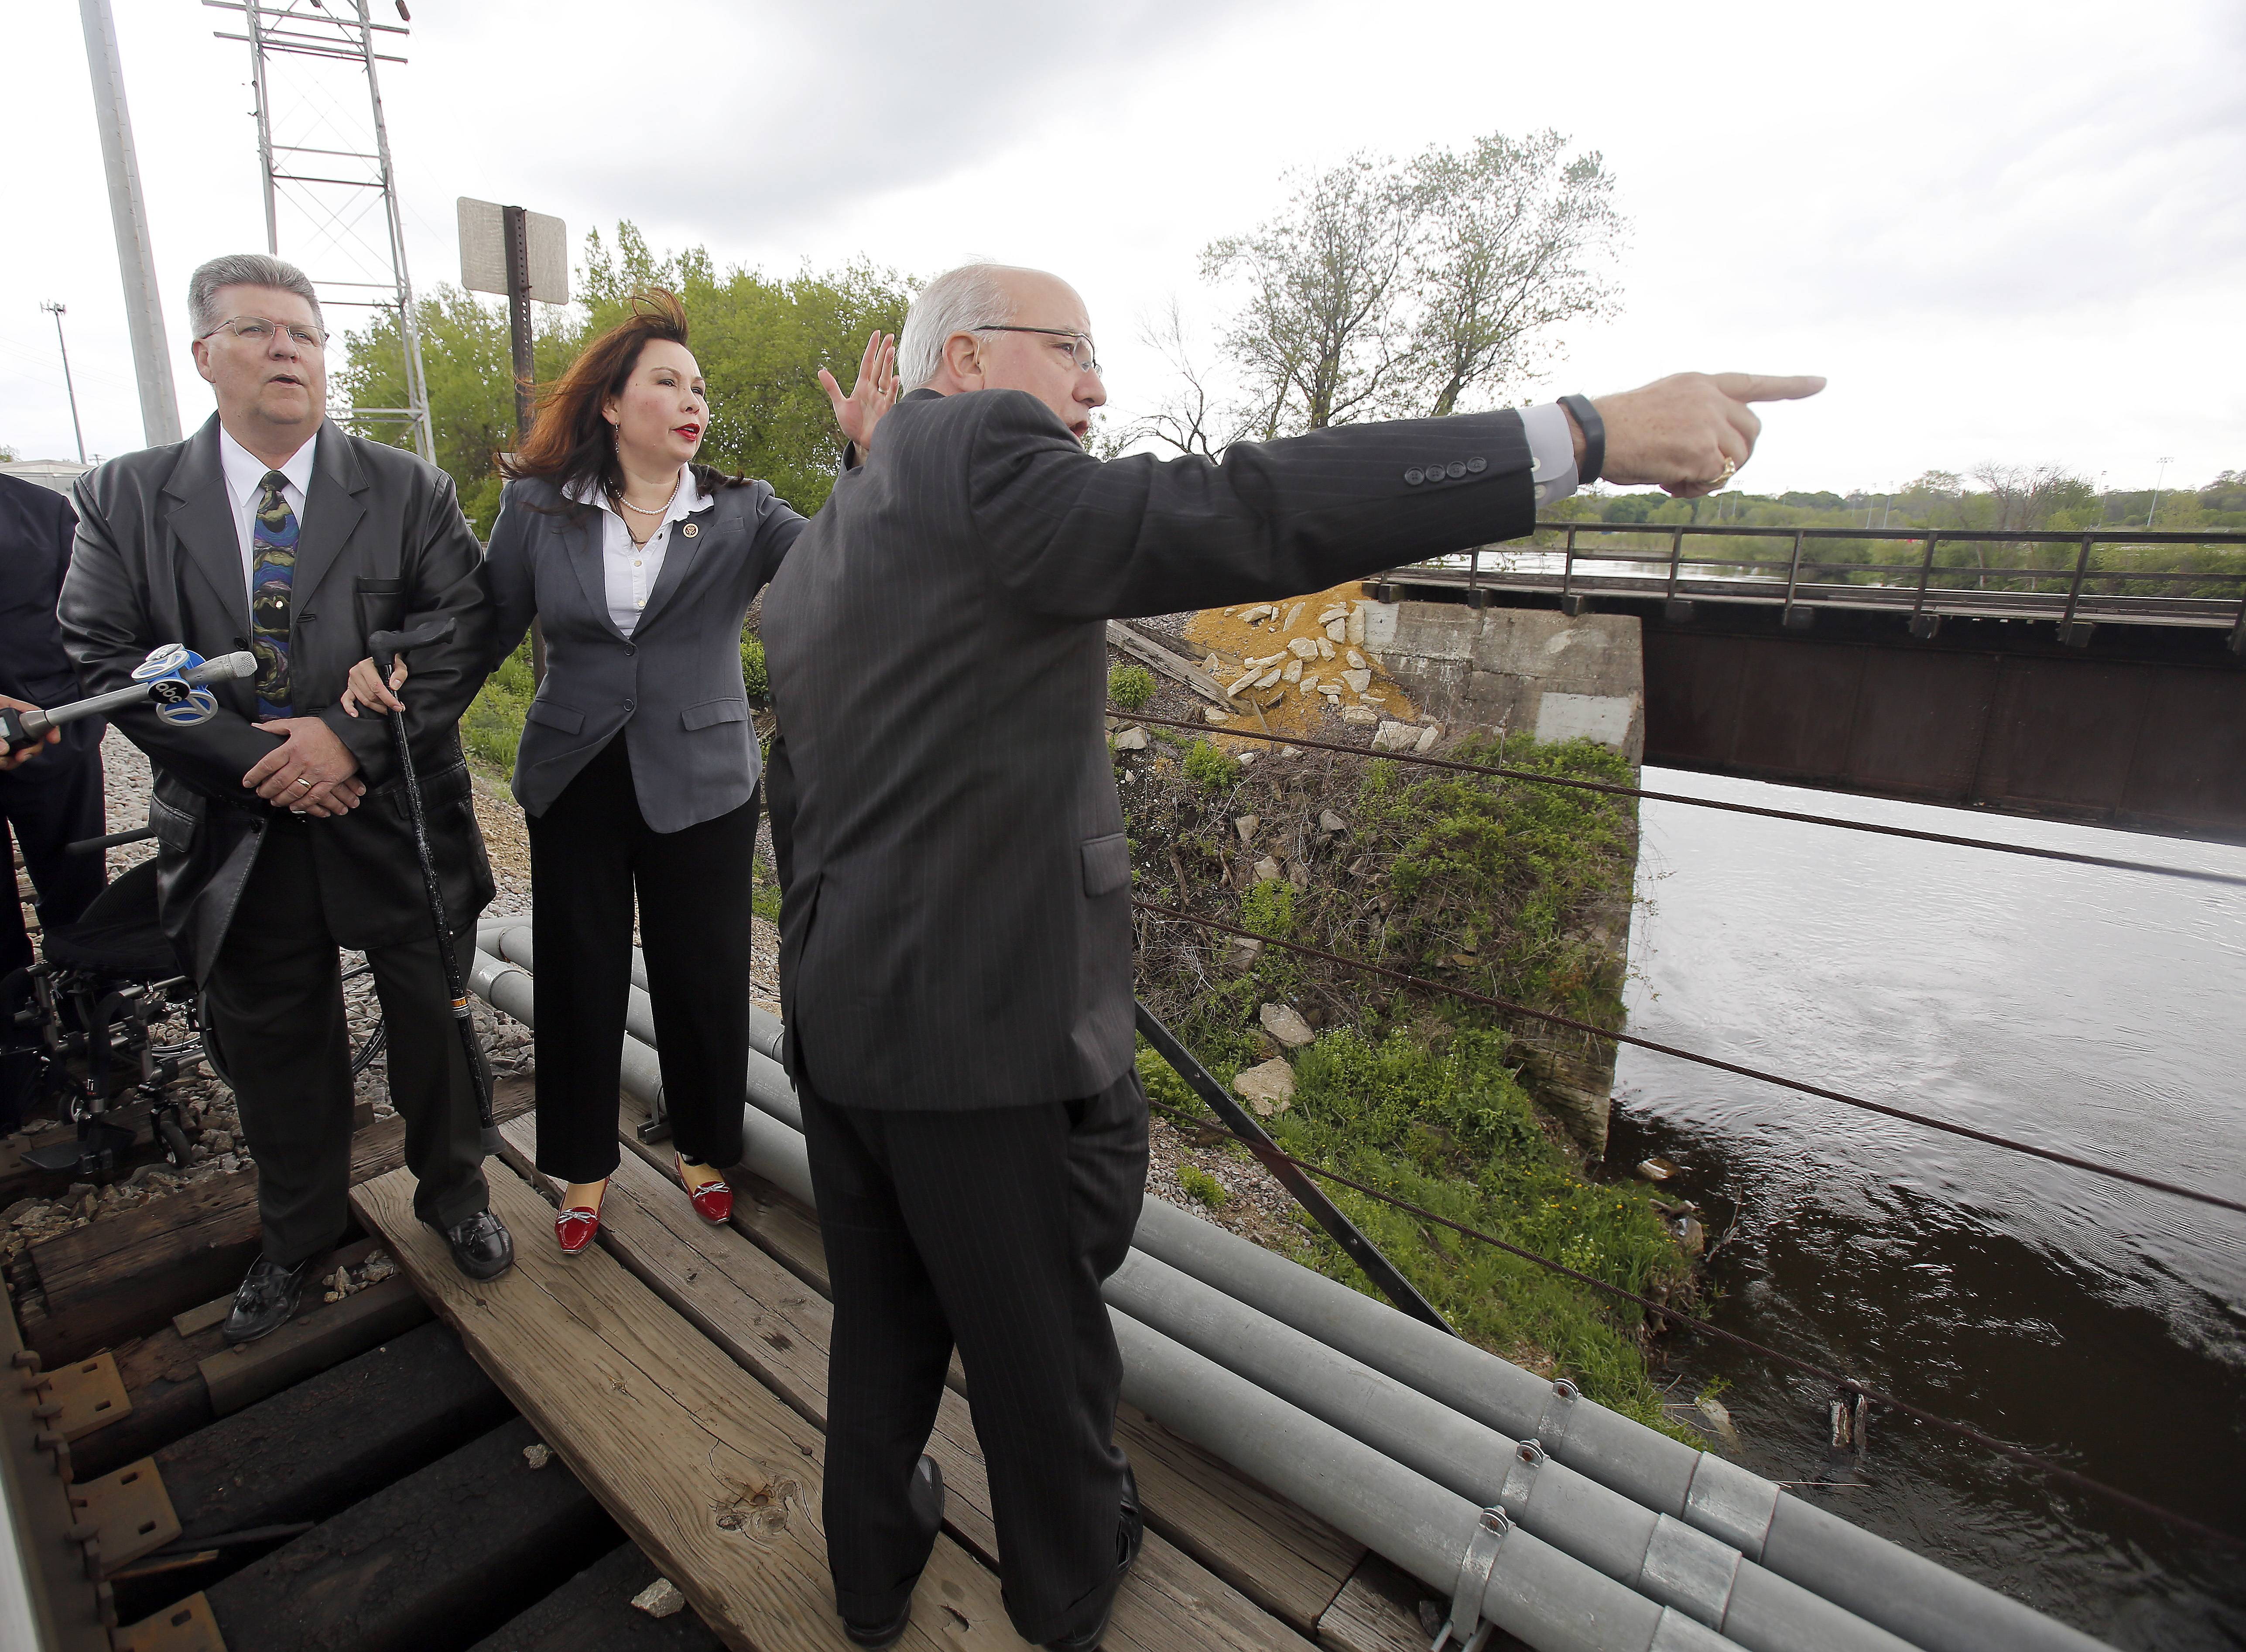 Metra Executive Director Don Orseno points out problems with an Elgin railway bridge to Sen. Tammy Duckworth in 2014.